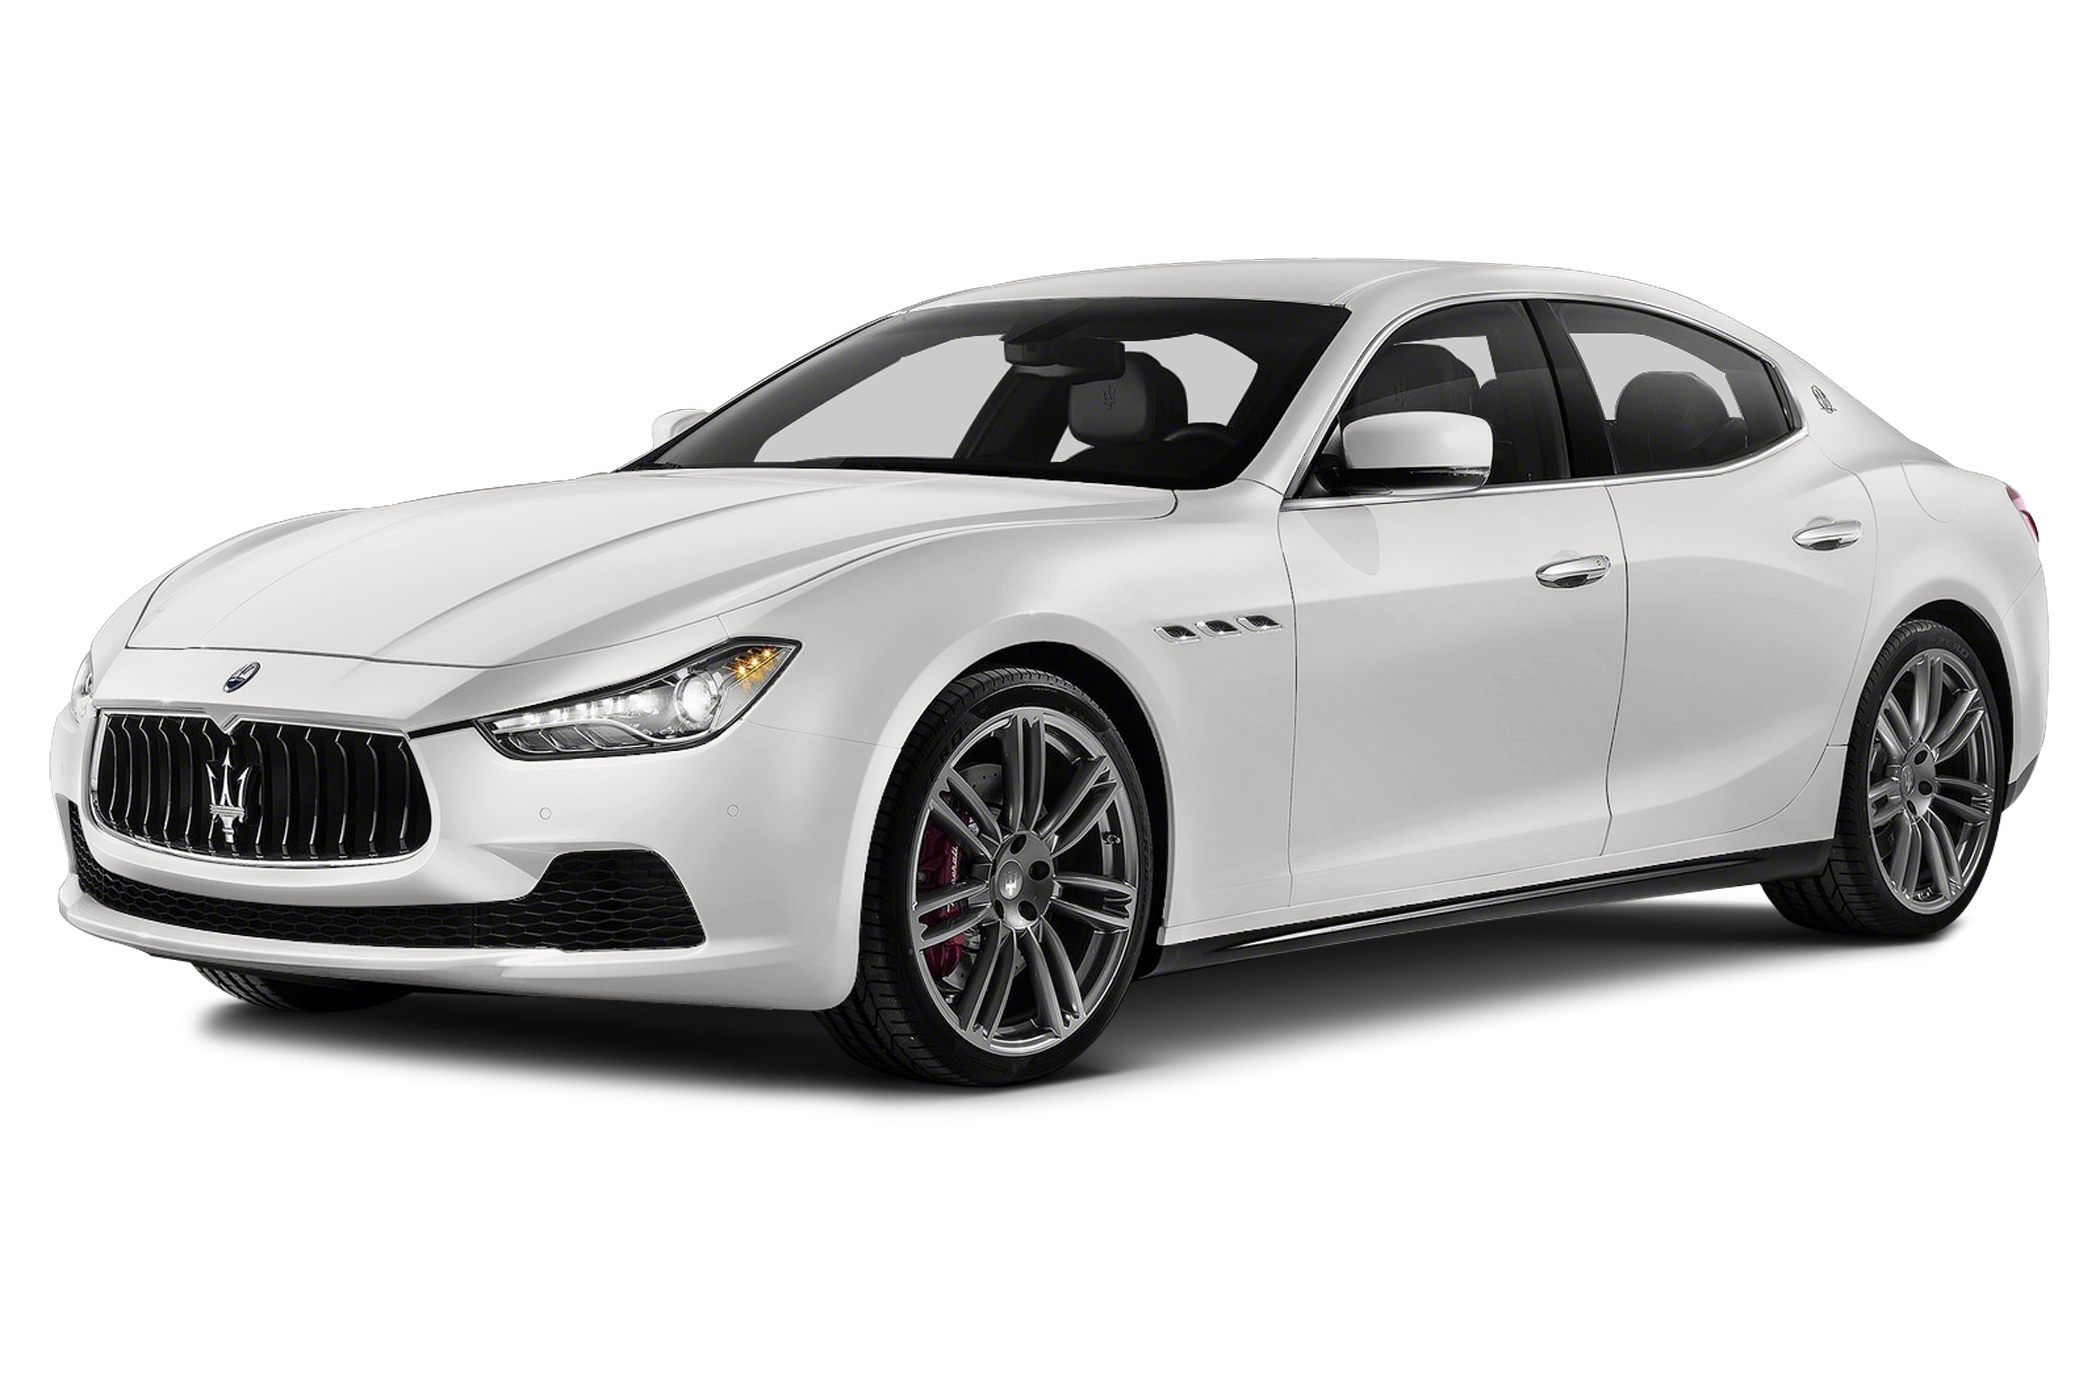 2014 maserati ghibli s q4 w video autoblog. Black Bedroom Furniture Sets. Home Design Ideas